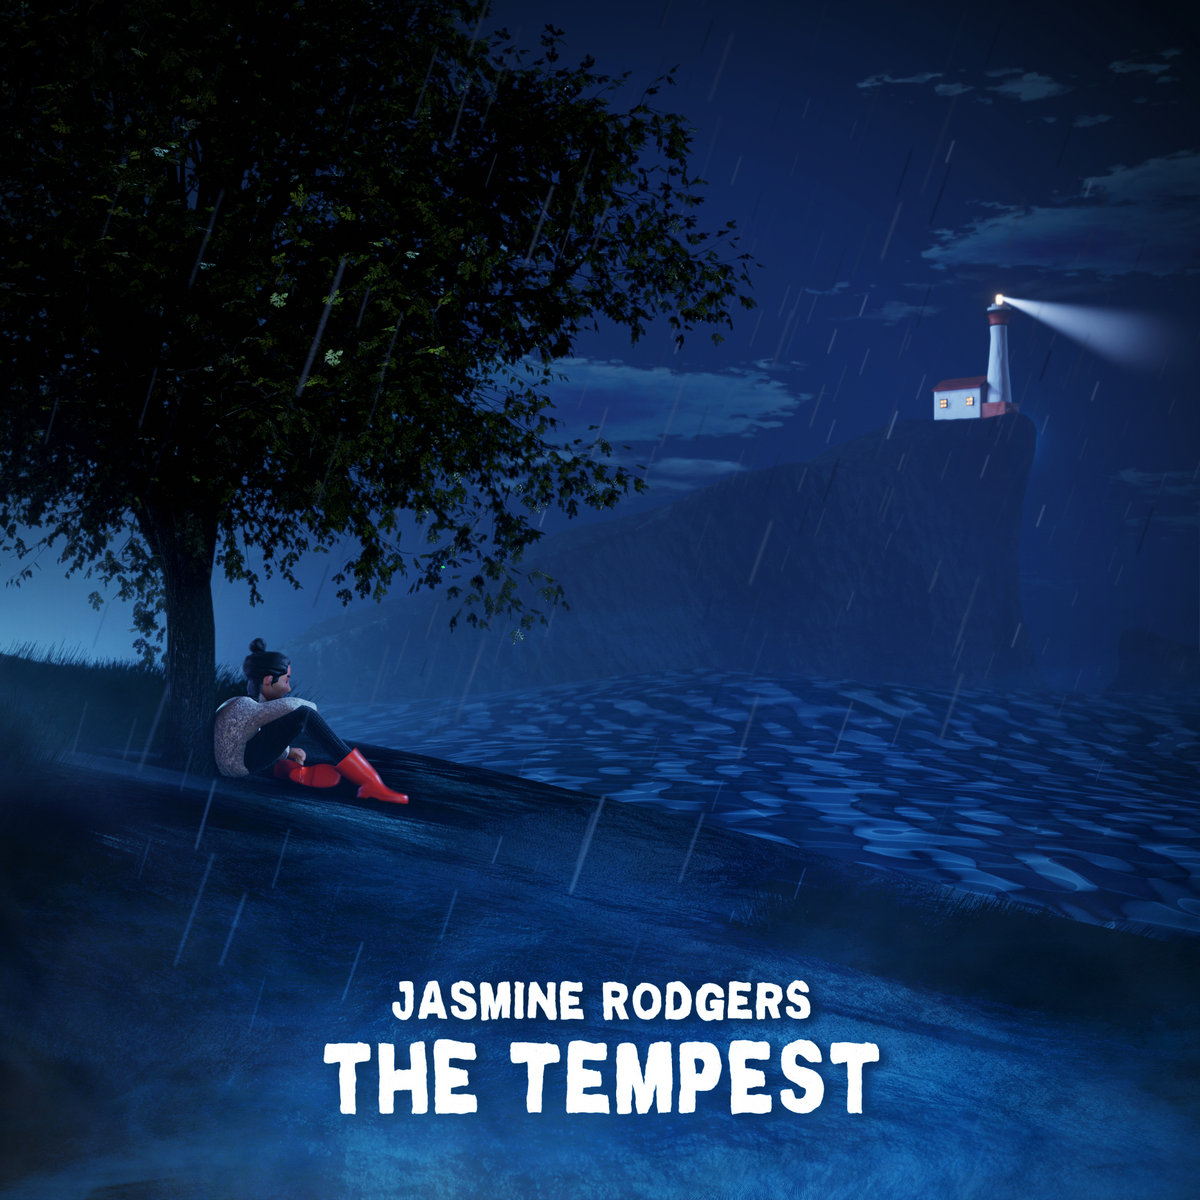 The Tempest by Jasmine Rodgers